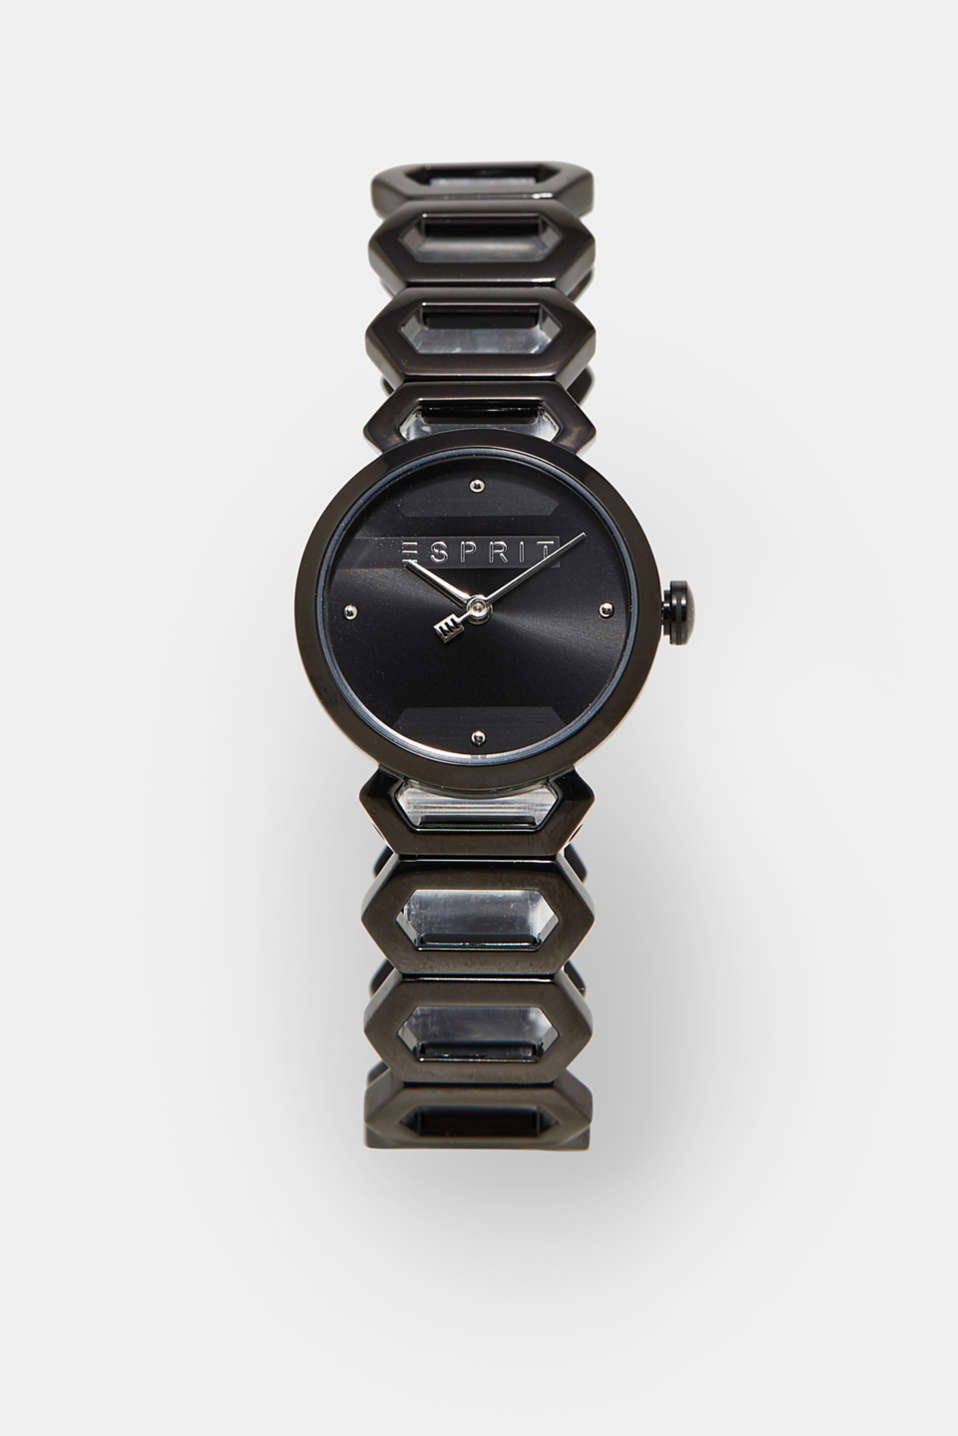 Esprit - Stainless steel watch with black alloy